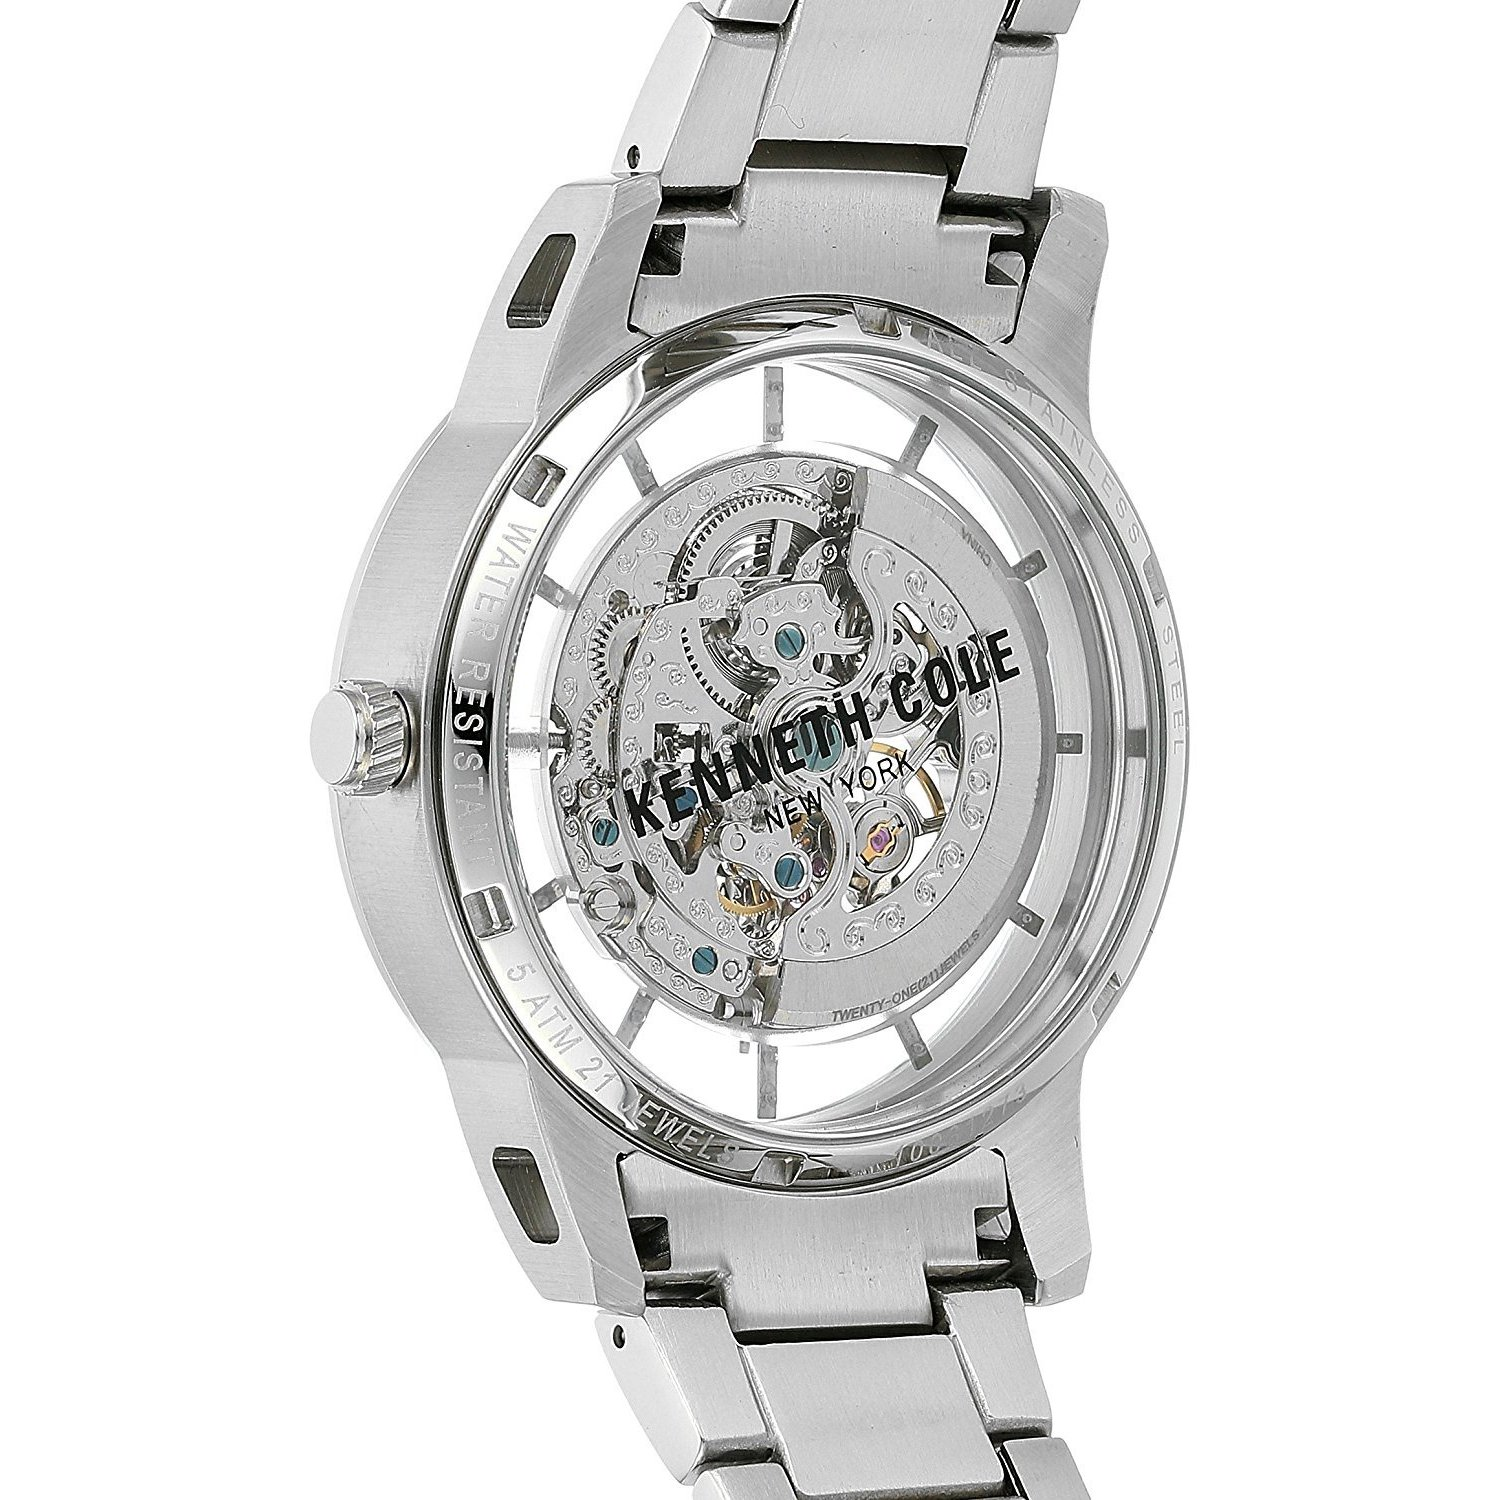 9605590f89b Shop Kenneth Cole New York Men s Automatic 10031273 Skeleton Stainless  Steel Watch - Free Shipping Today - Overstock - 18226112